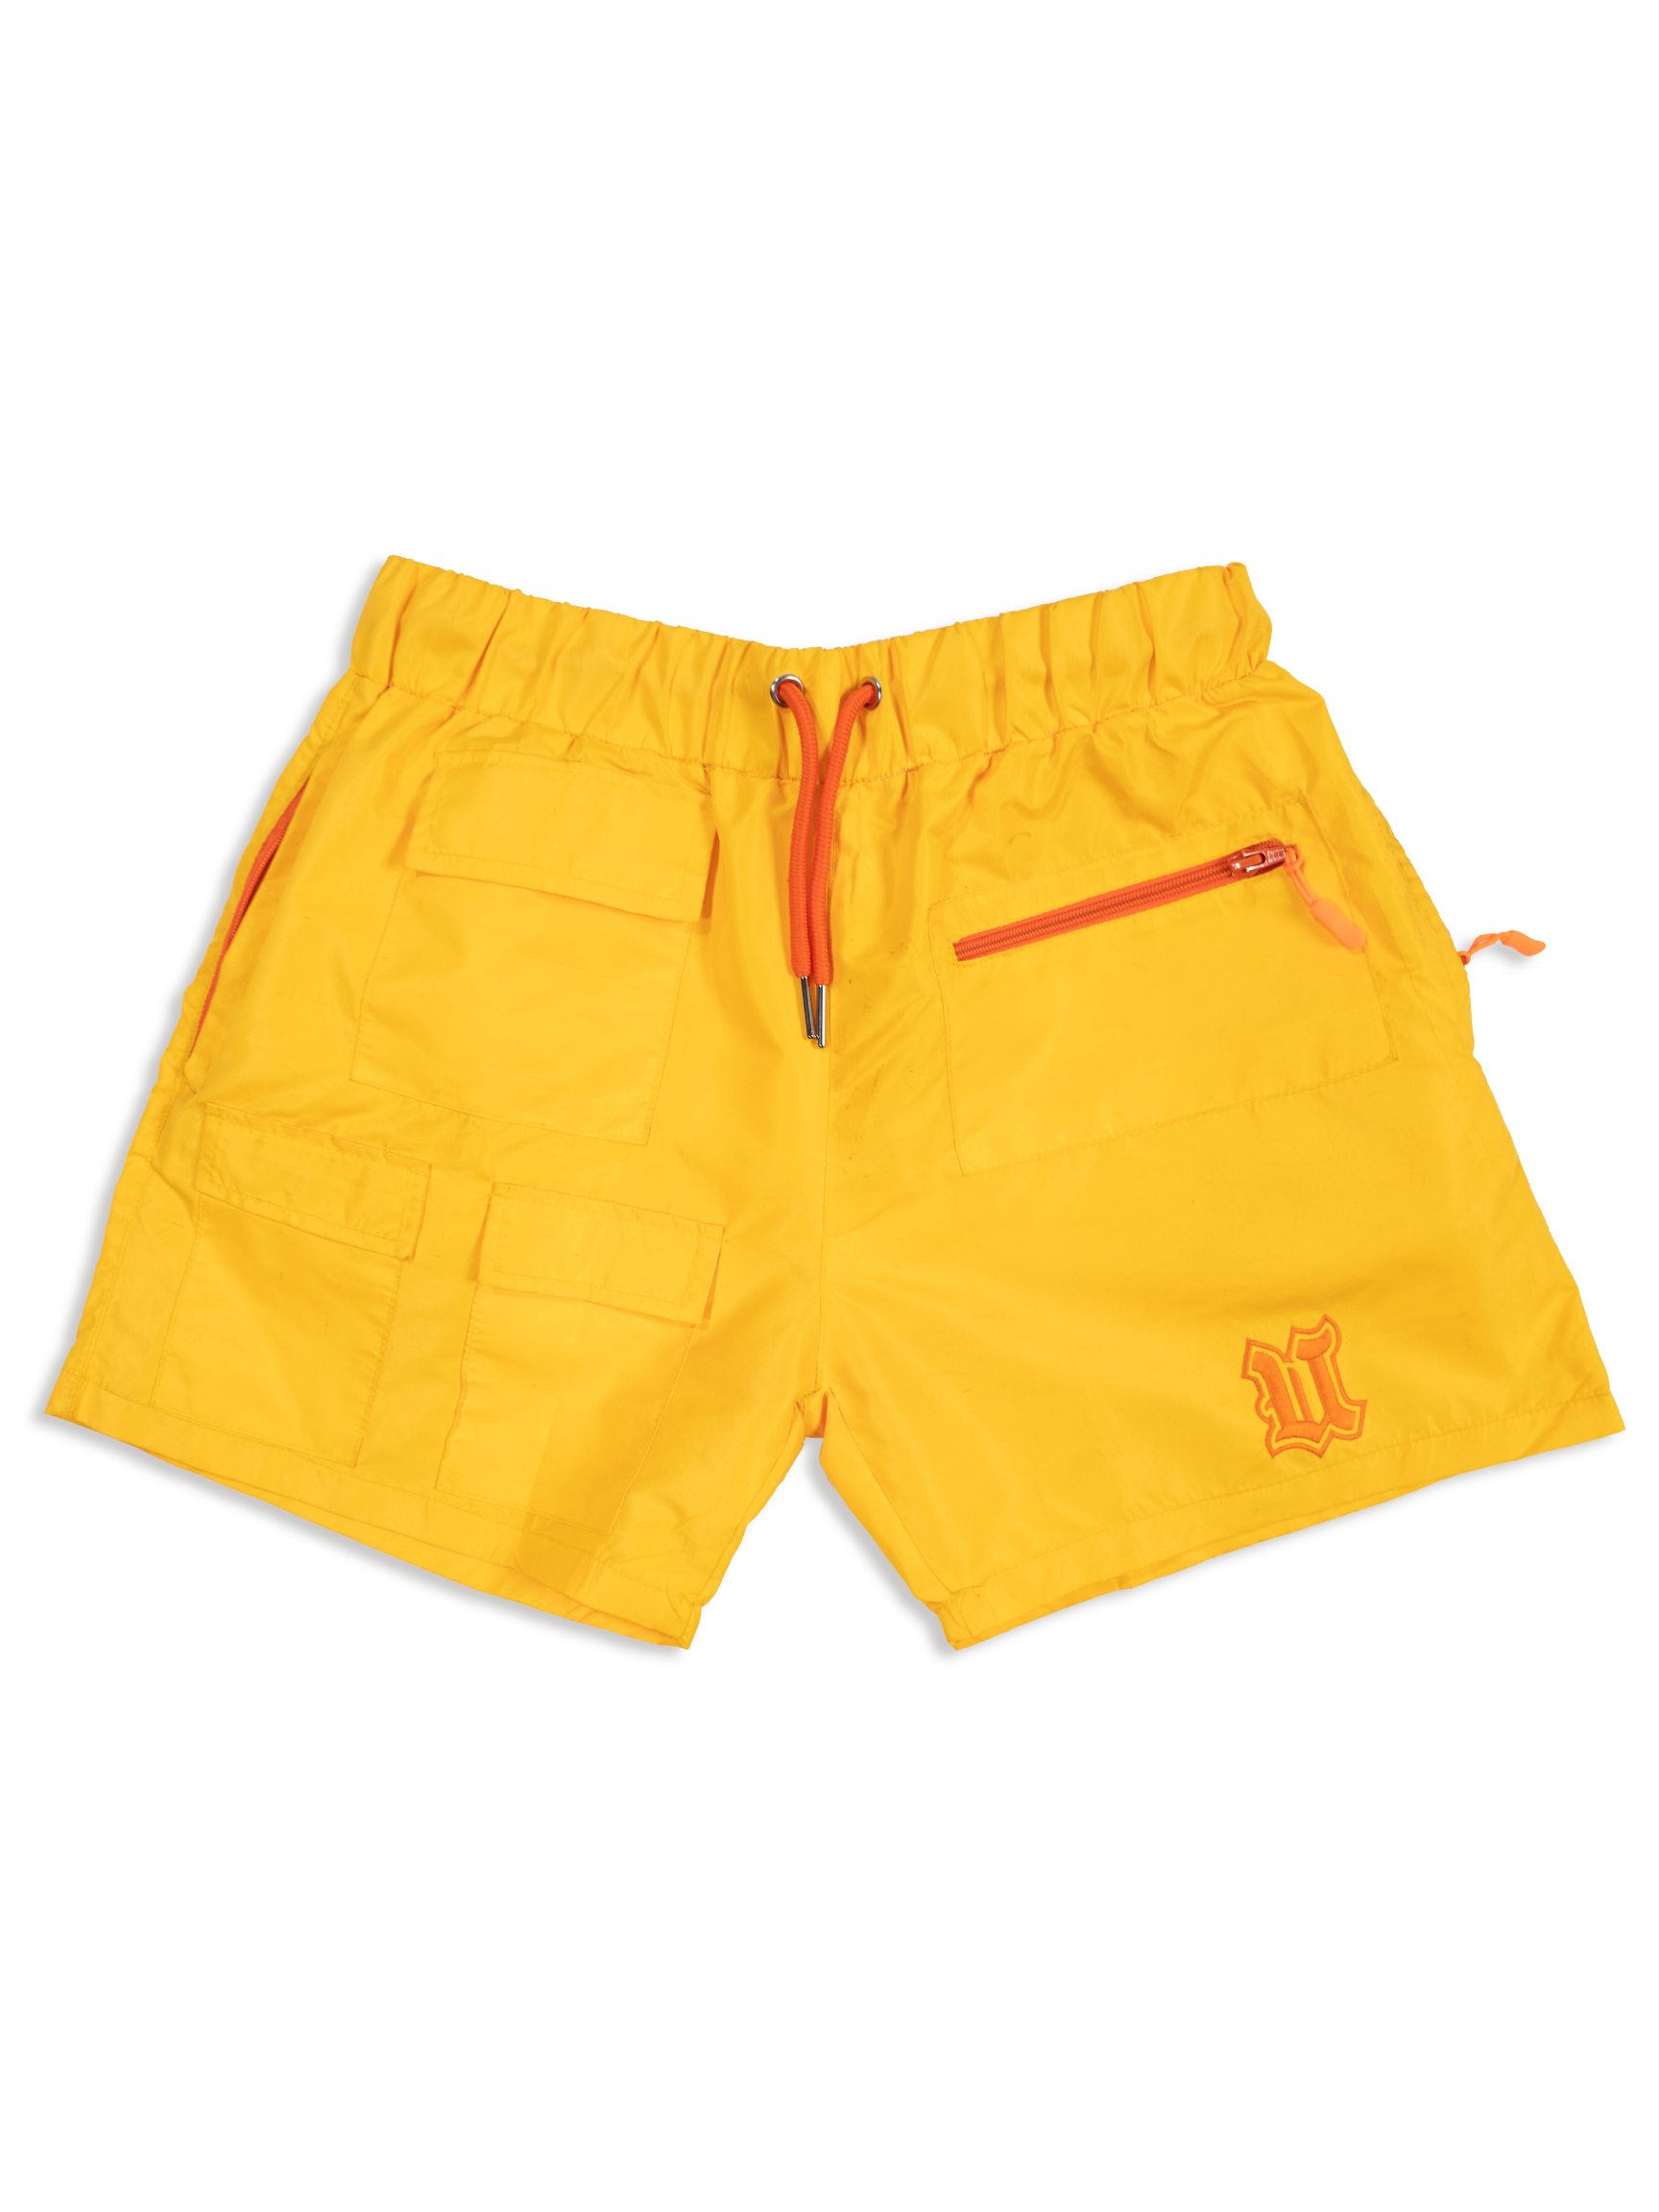 Flat Lay Yellow Nylon Short Front View